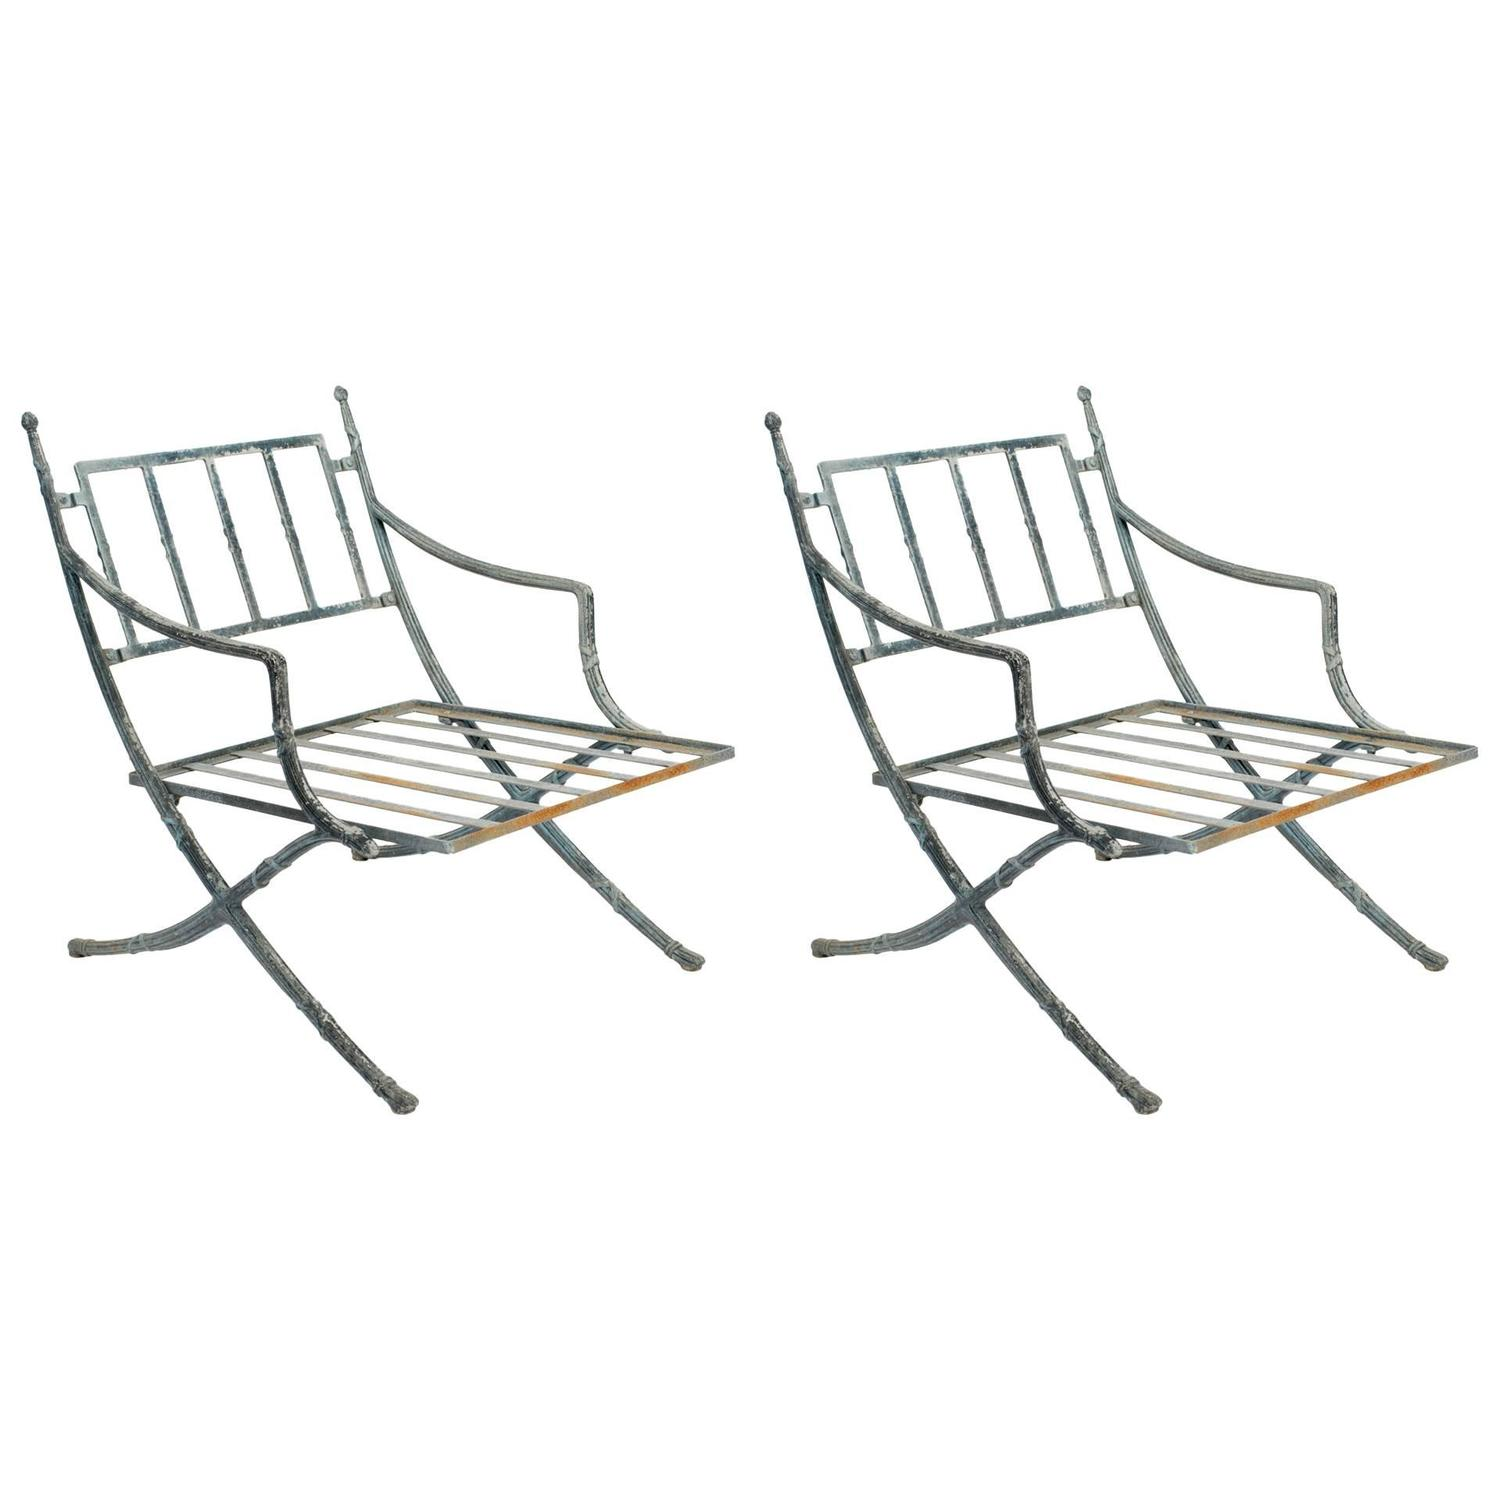 Outdoor Metal Furniture For Sale: Pair Of Classical Metal Outdoor Chairs For Sale At 1stdibs